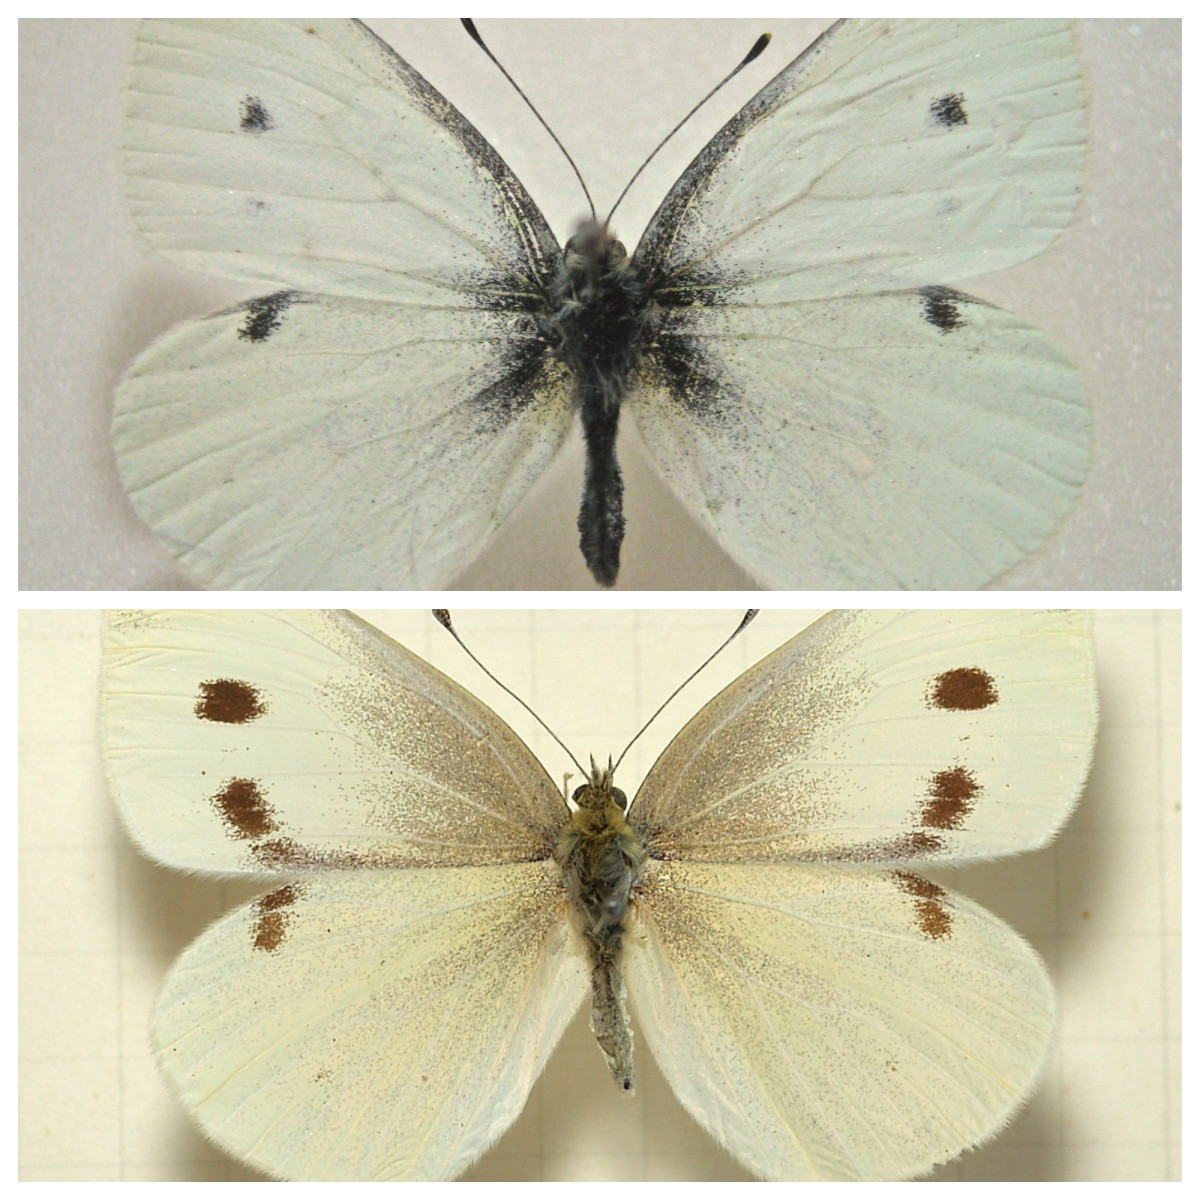 Cabbage butterflies: male (top) and female (bottom). If you see these flying around your garden, it's a sign that cabbage worms are coming (if they're not already here).